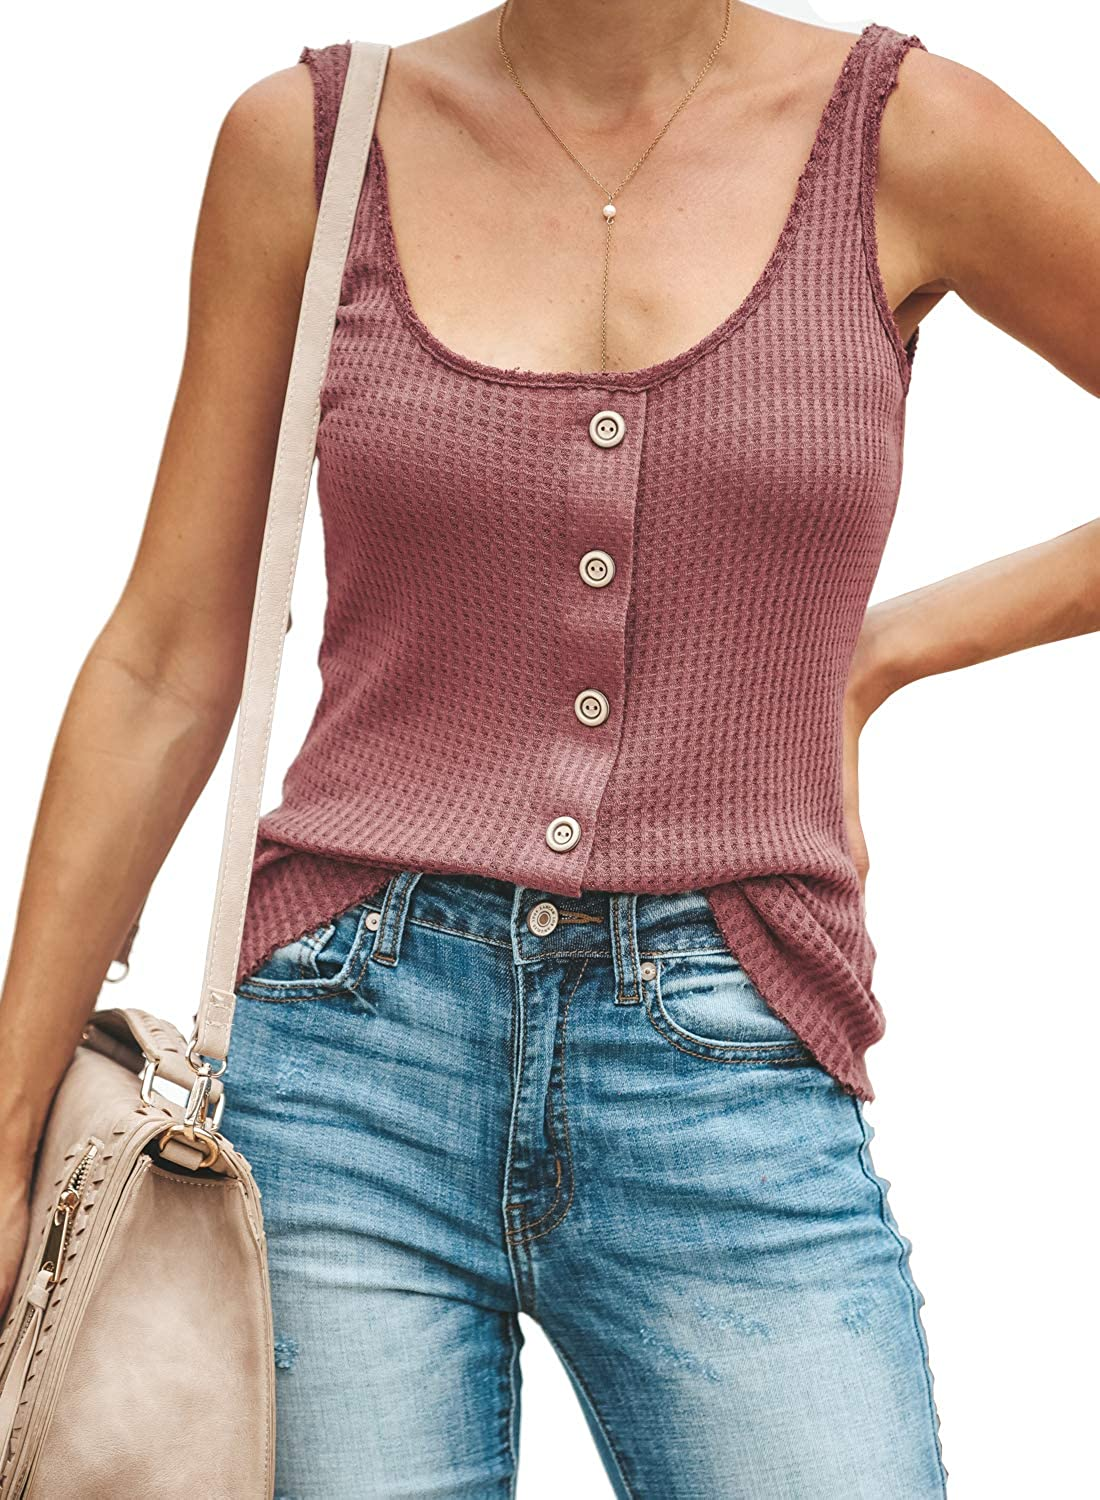 Happy Sailed Women Summer Sleeveless Button Down Vests Casual Tanks Camis Tops S-2XL